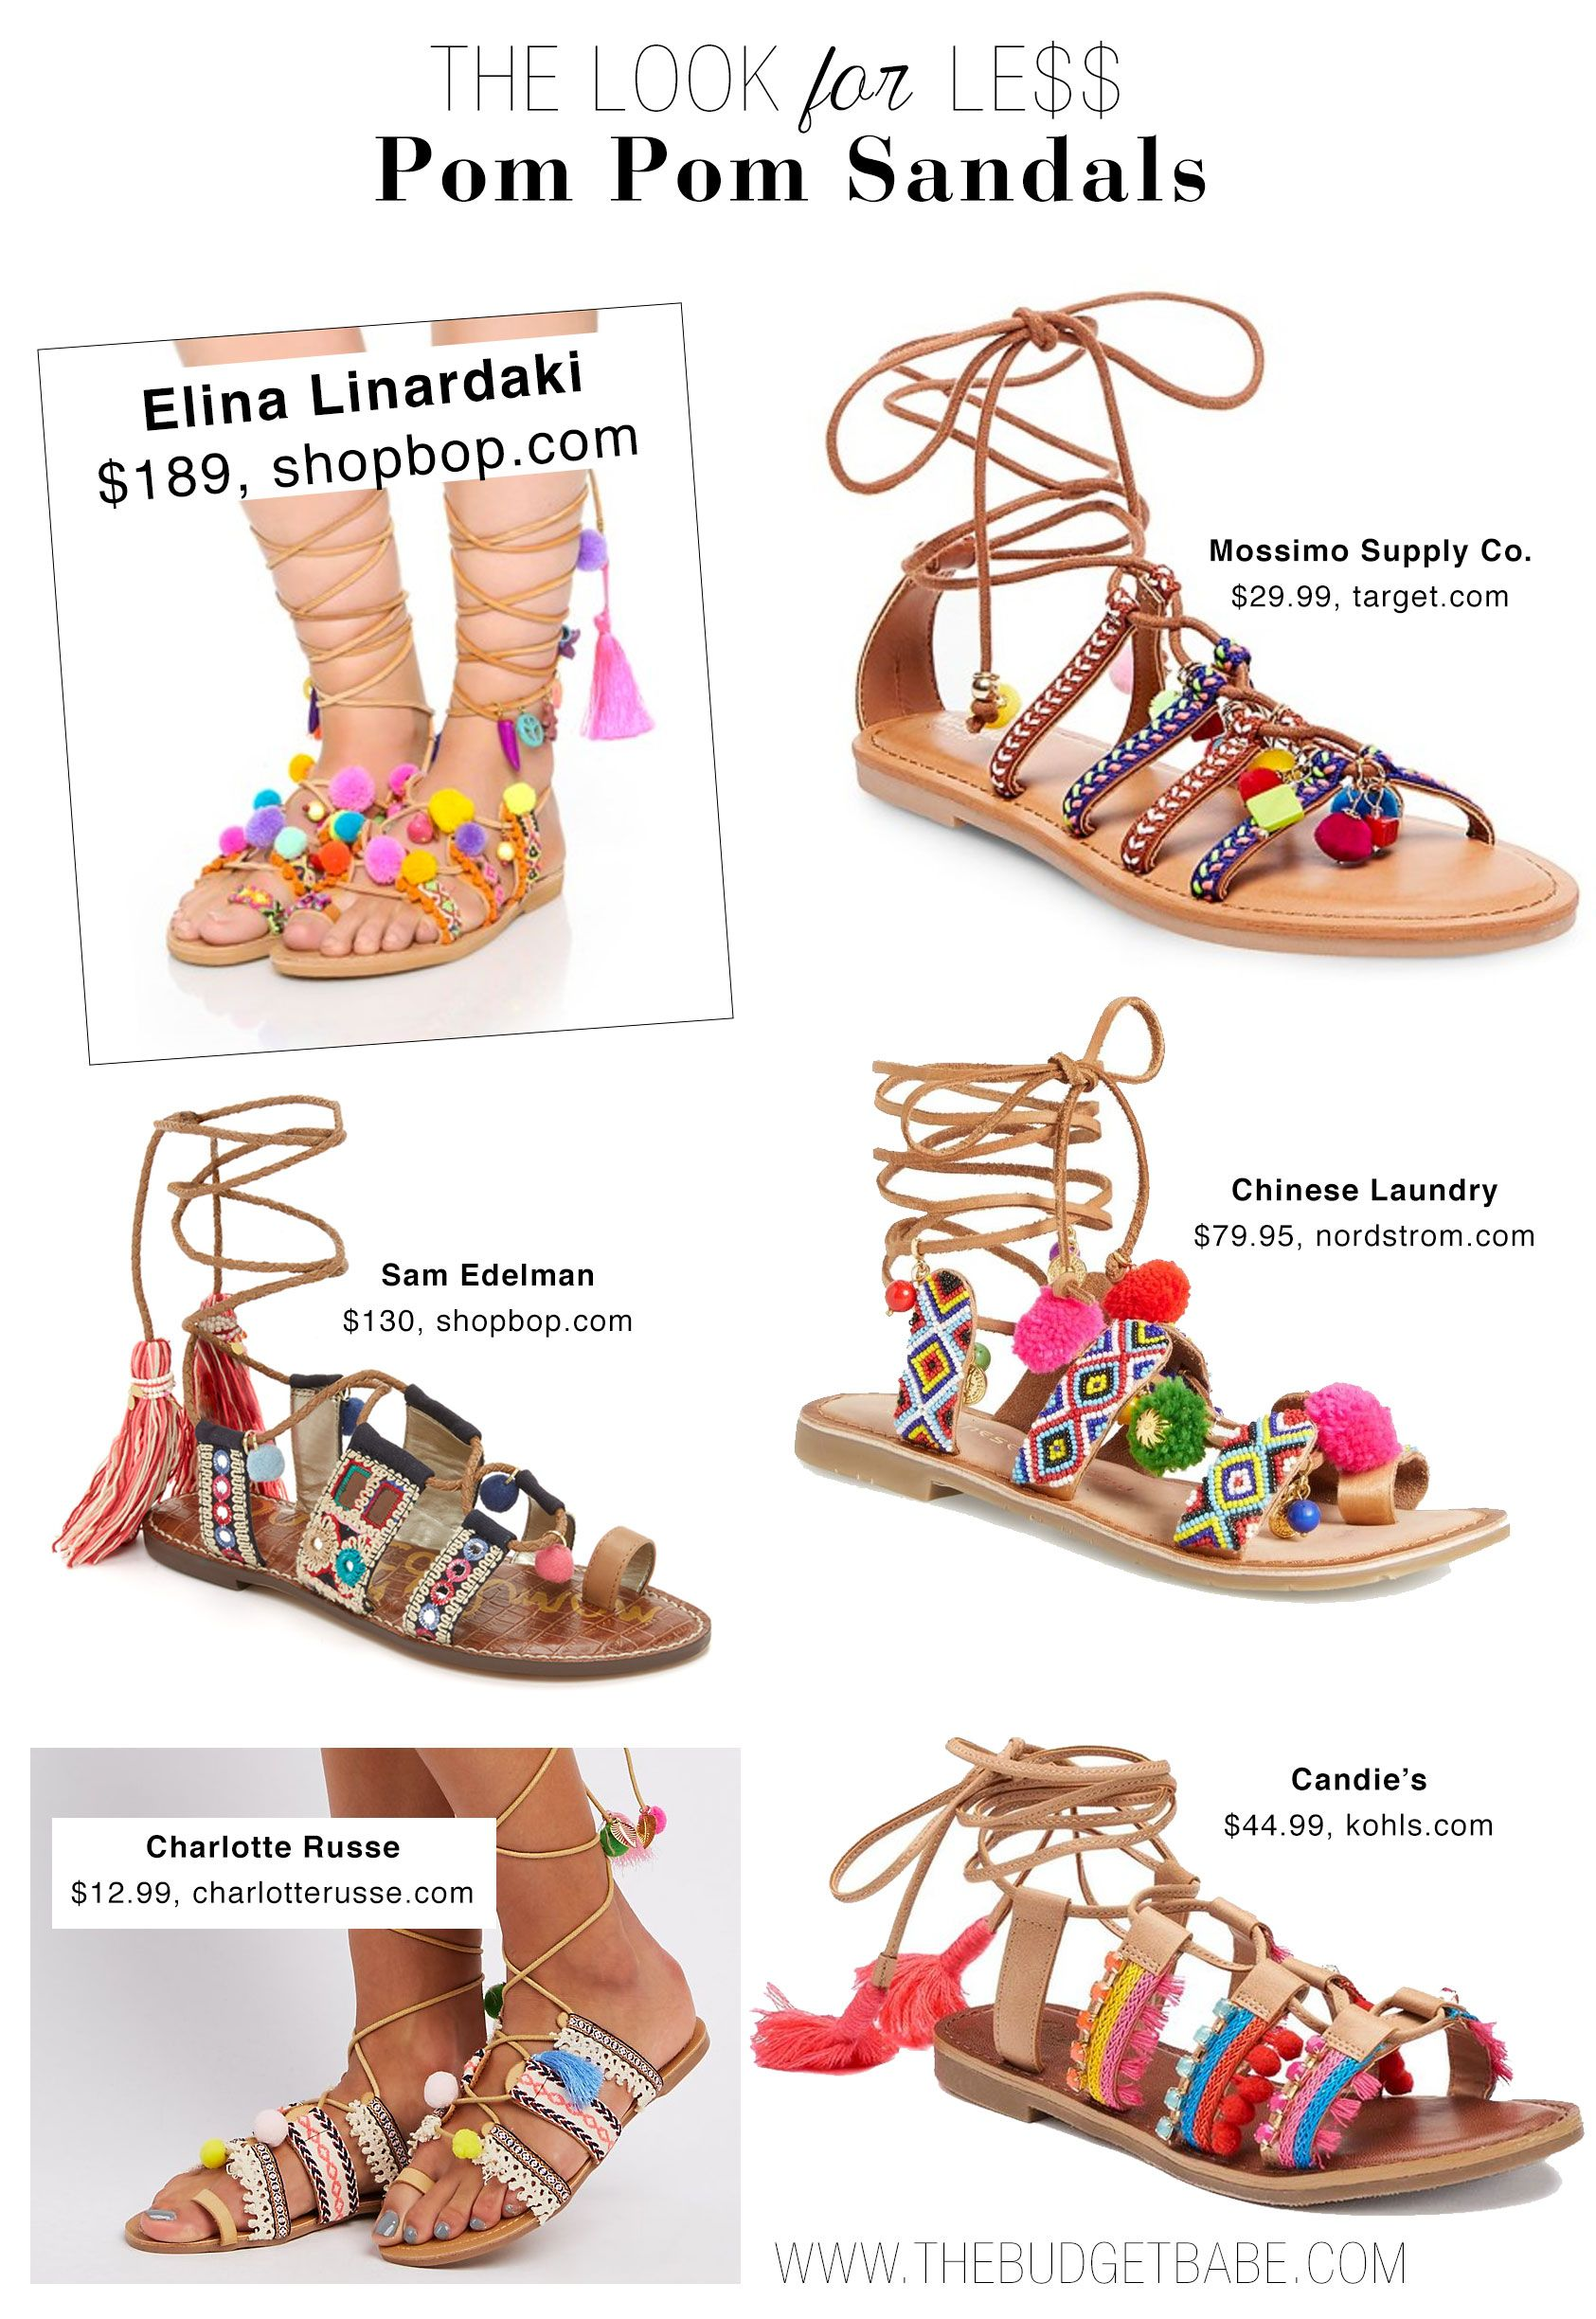 fc3930391 Shop the pom-pom sandal trend inspired by Elina Linardaki s covetable  designs - including a Target dupe under  30!